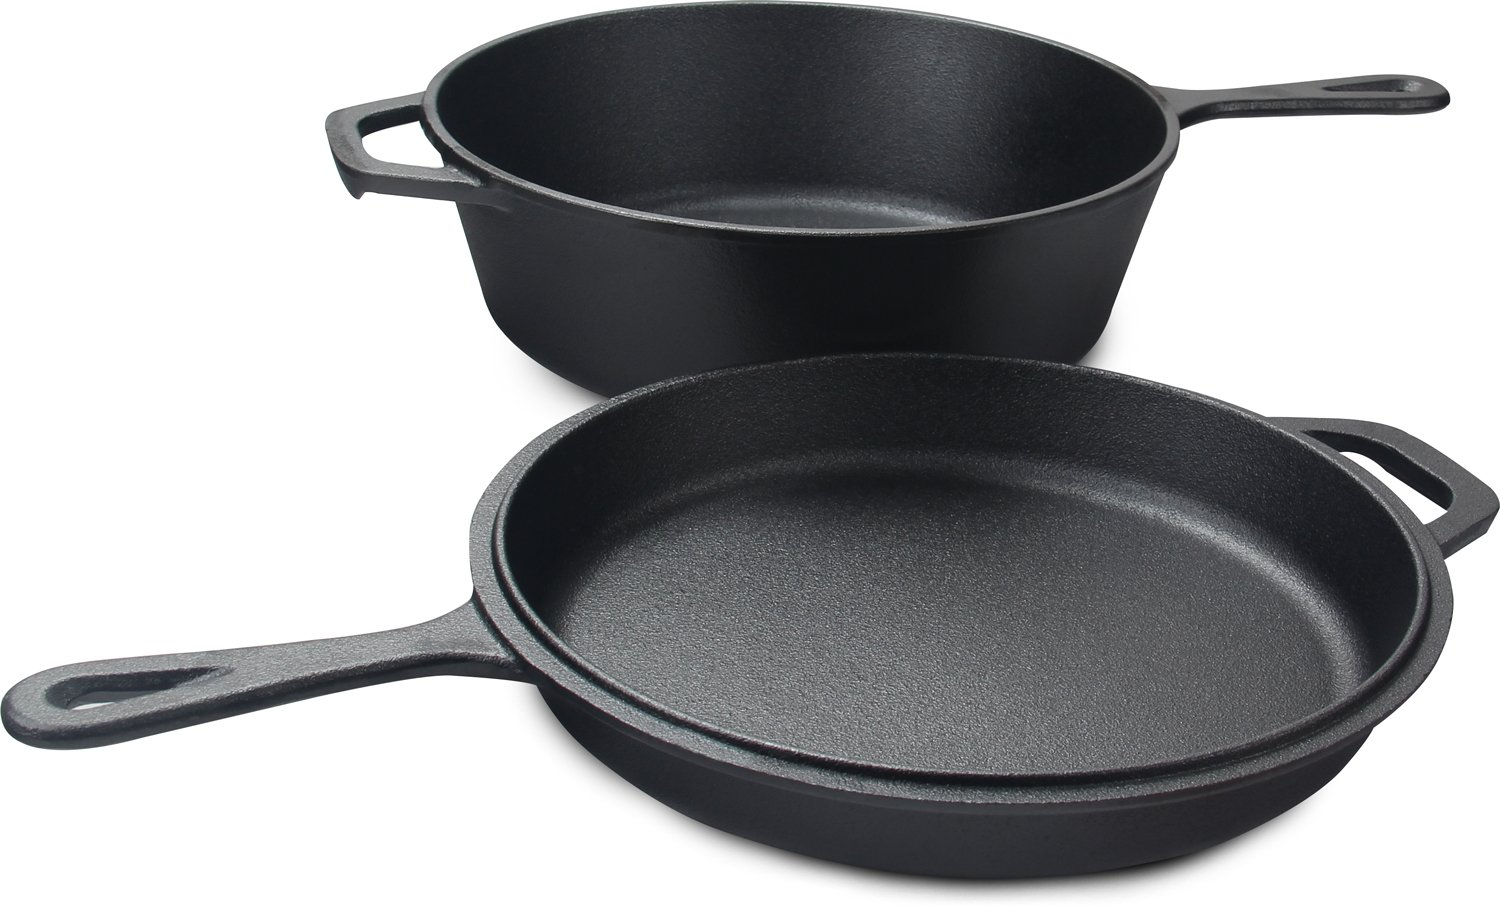 Utopia Kitchen Pre-Seasoned Cast Iron 2-In-1 Combo Cooker with 3.2 Quart Dutch Oven and 10.25 inch Skillet